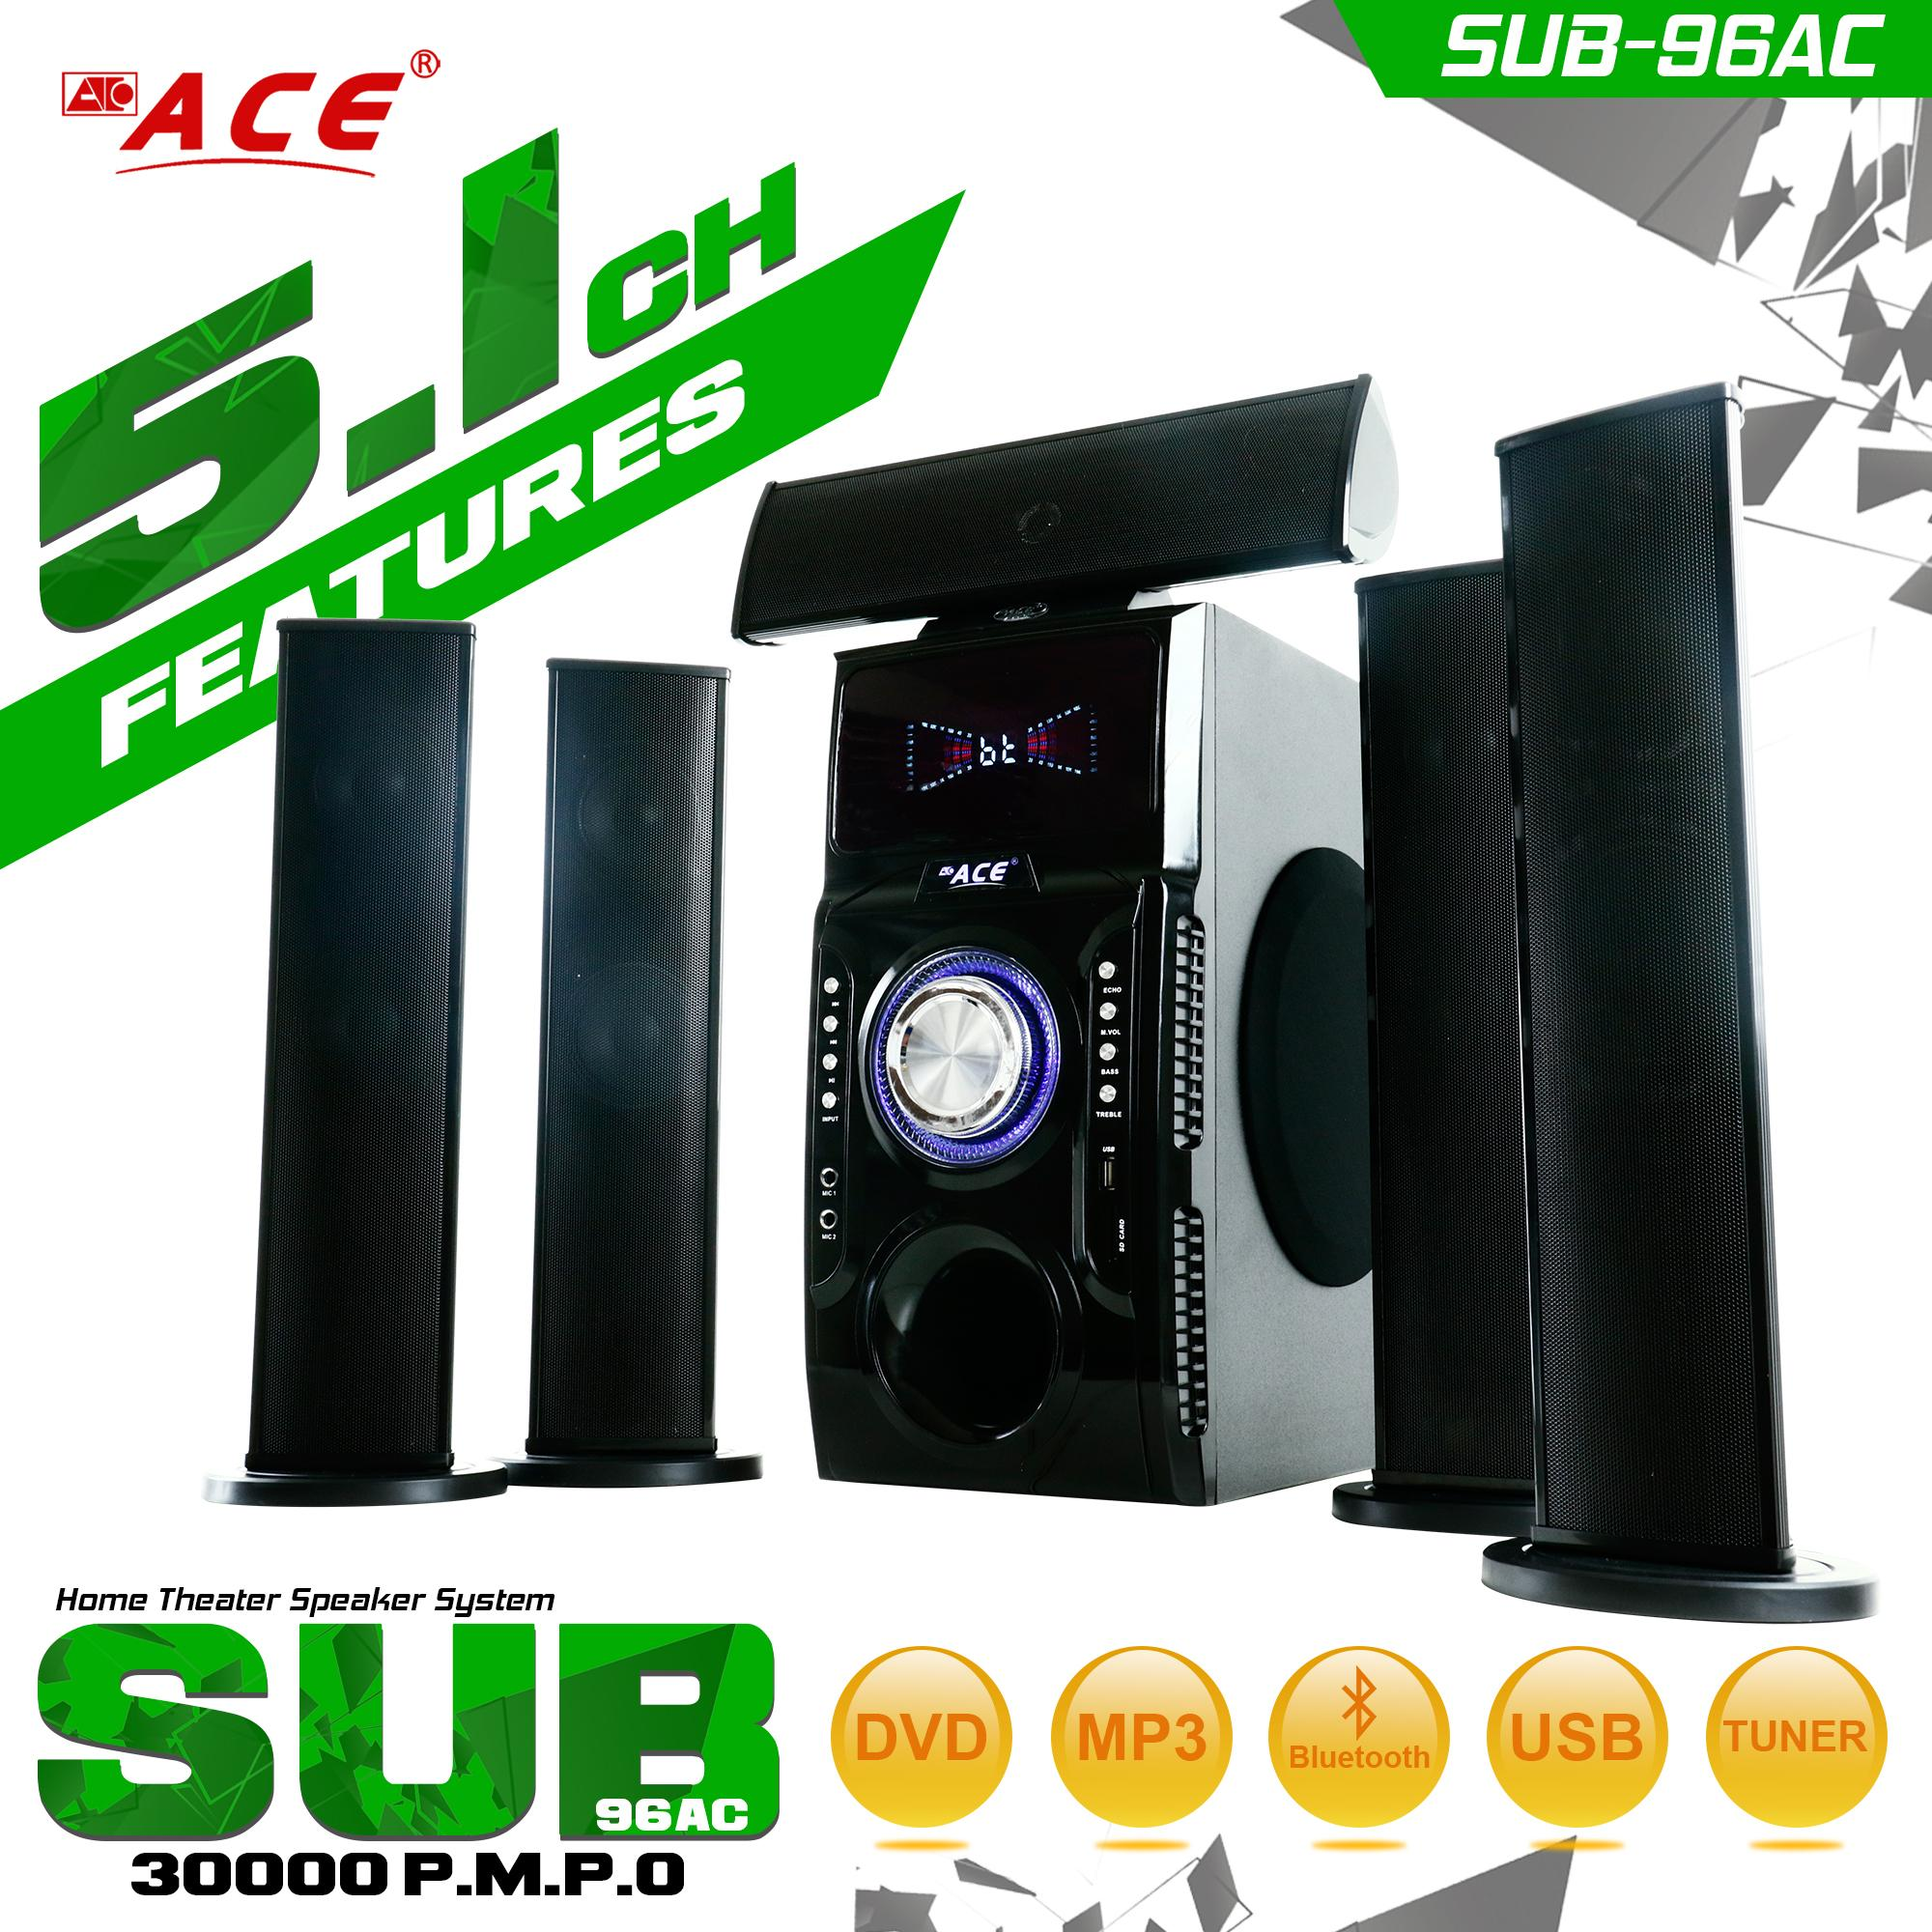 Subwoofer For Sale Speaker Prices Brands Specs In Multiple Wiring Types Ace Sub 96ac 51ch Multimedia System